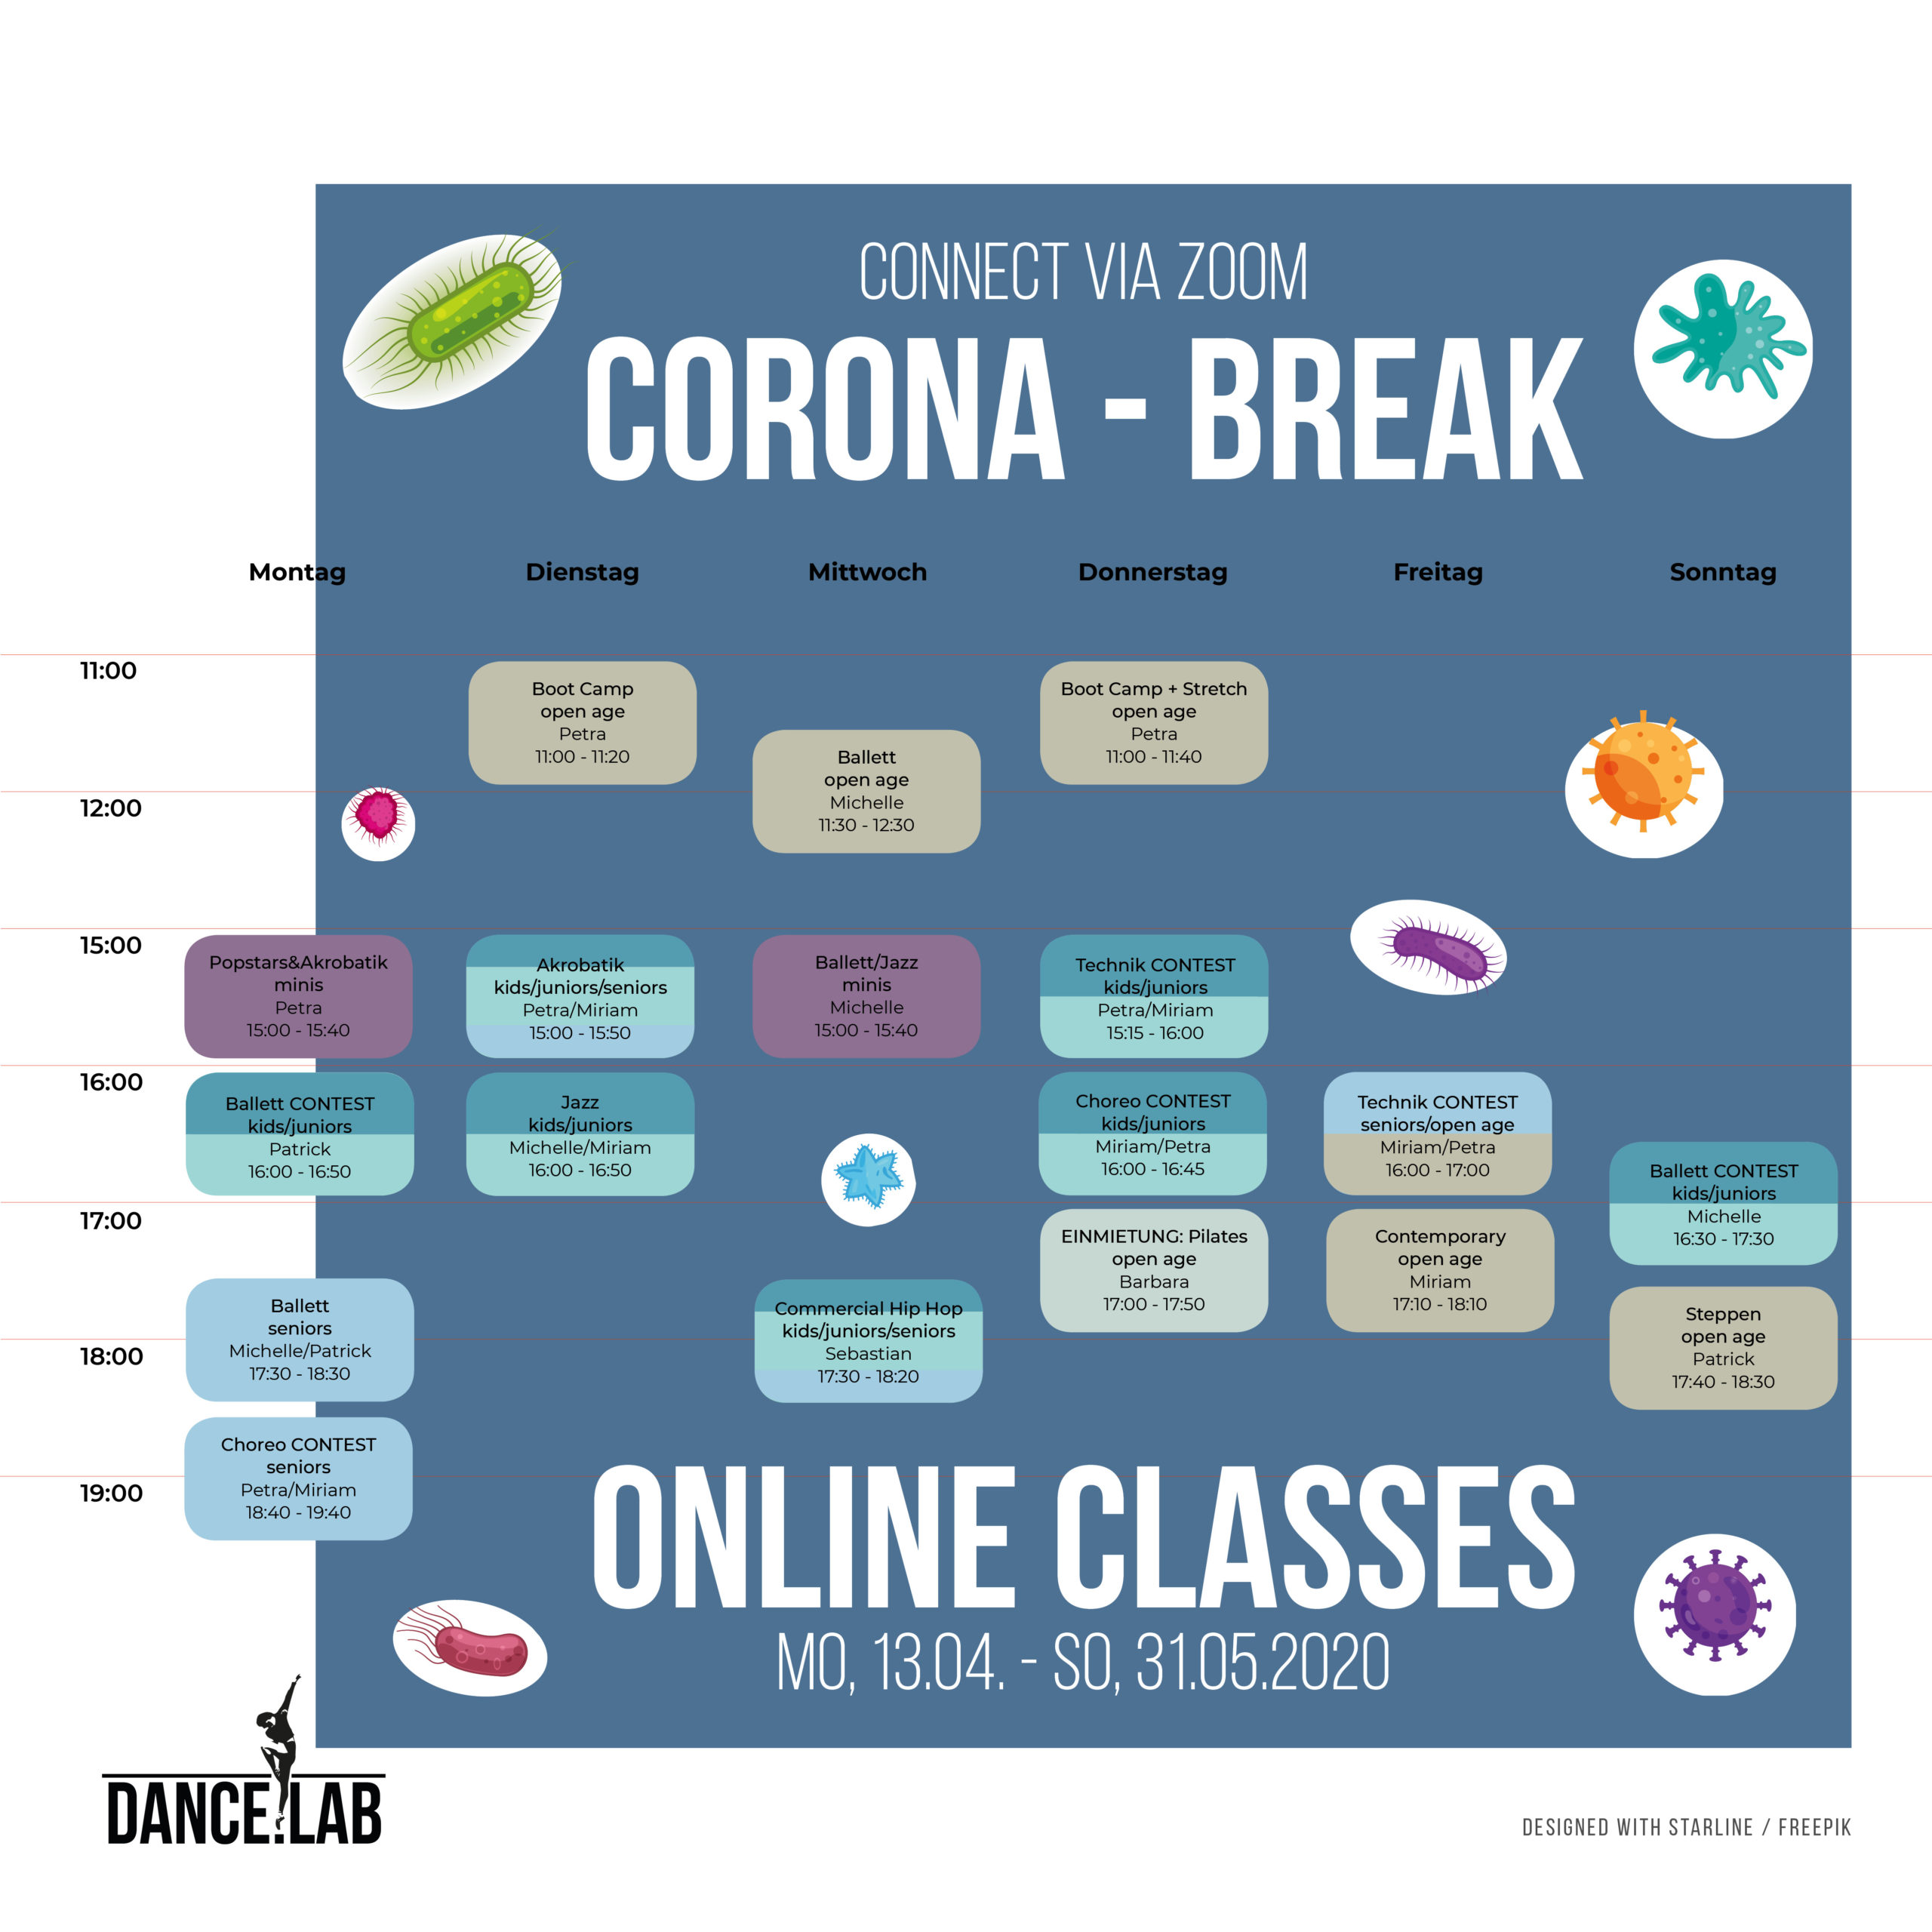 Corona Break - Online Classes - 13.04. – 31.05.2020